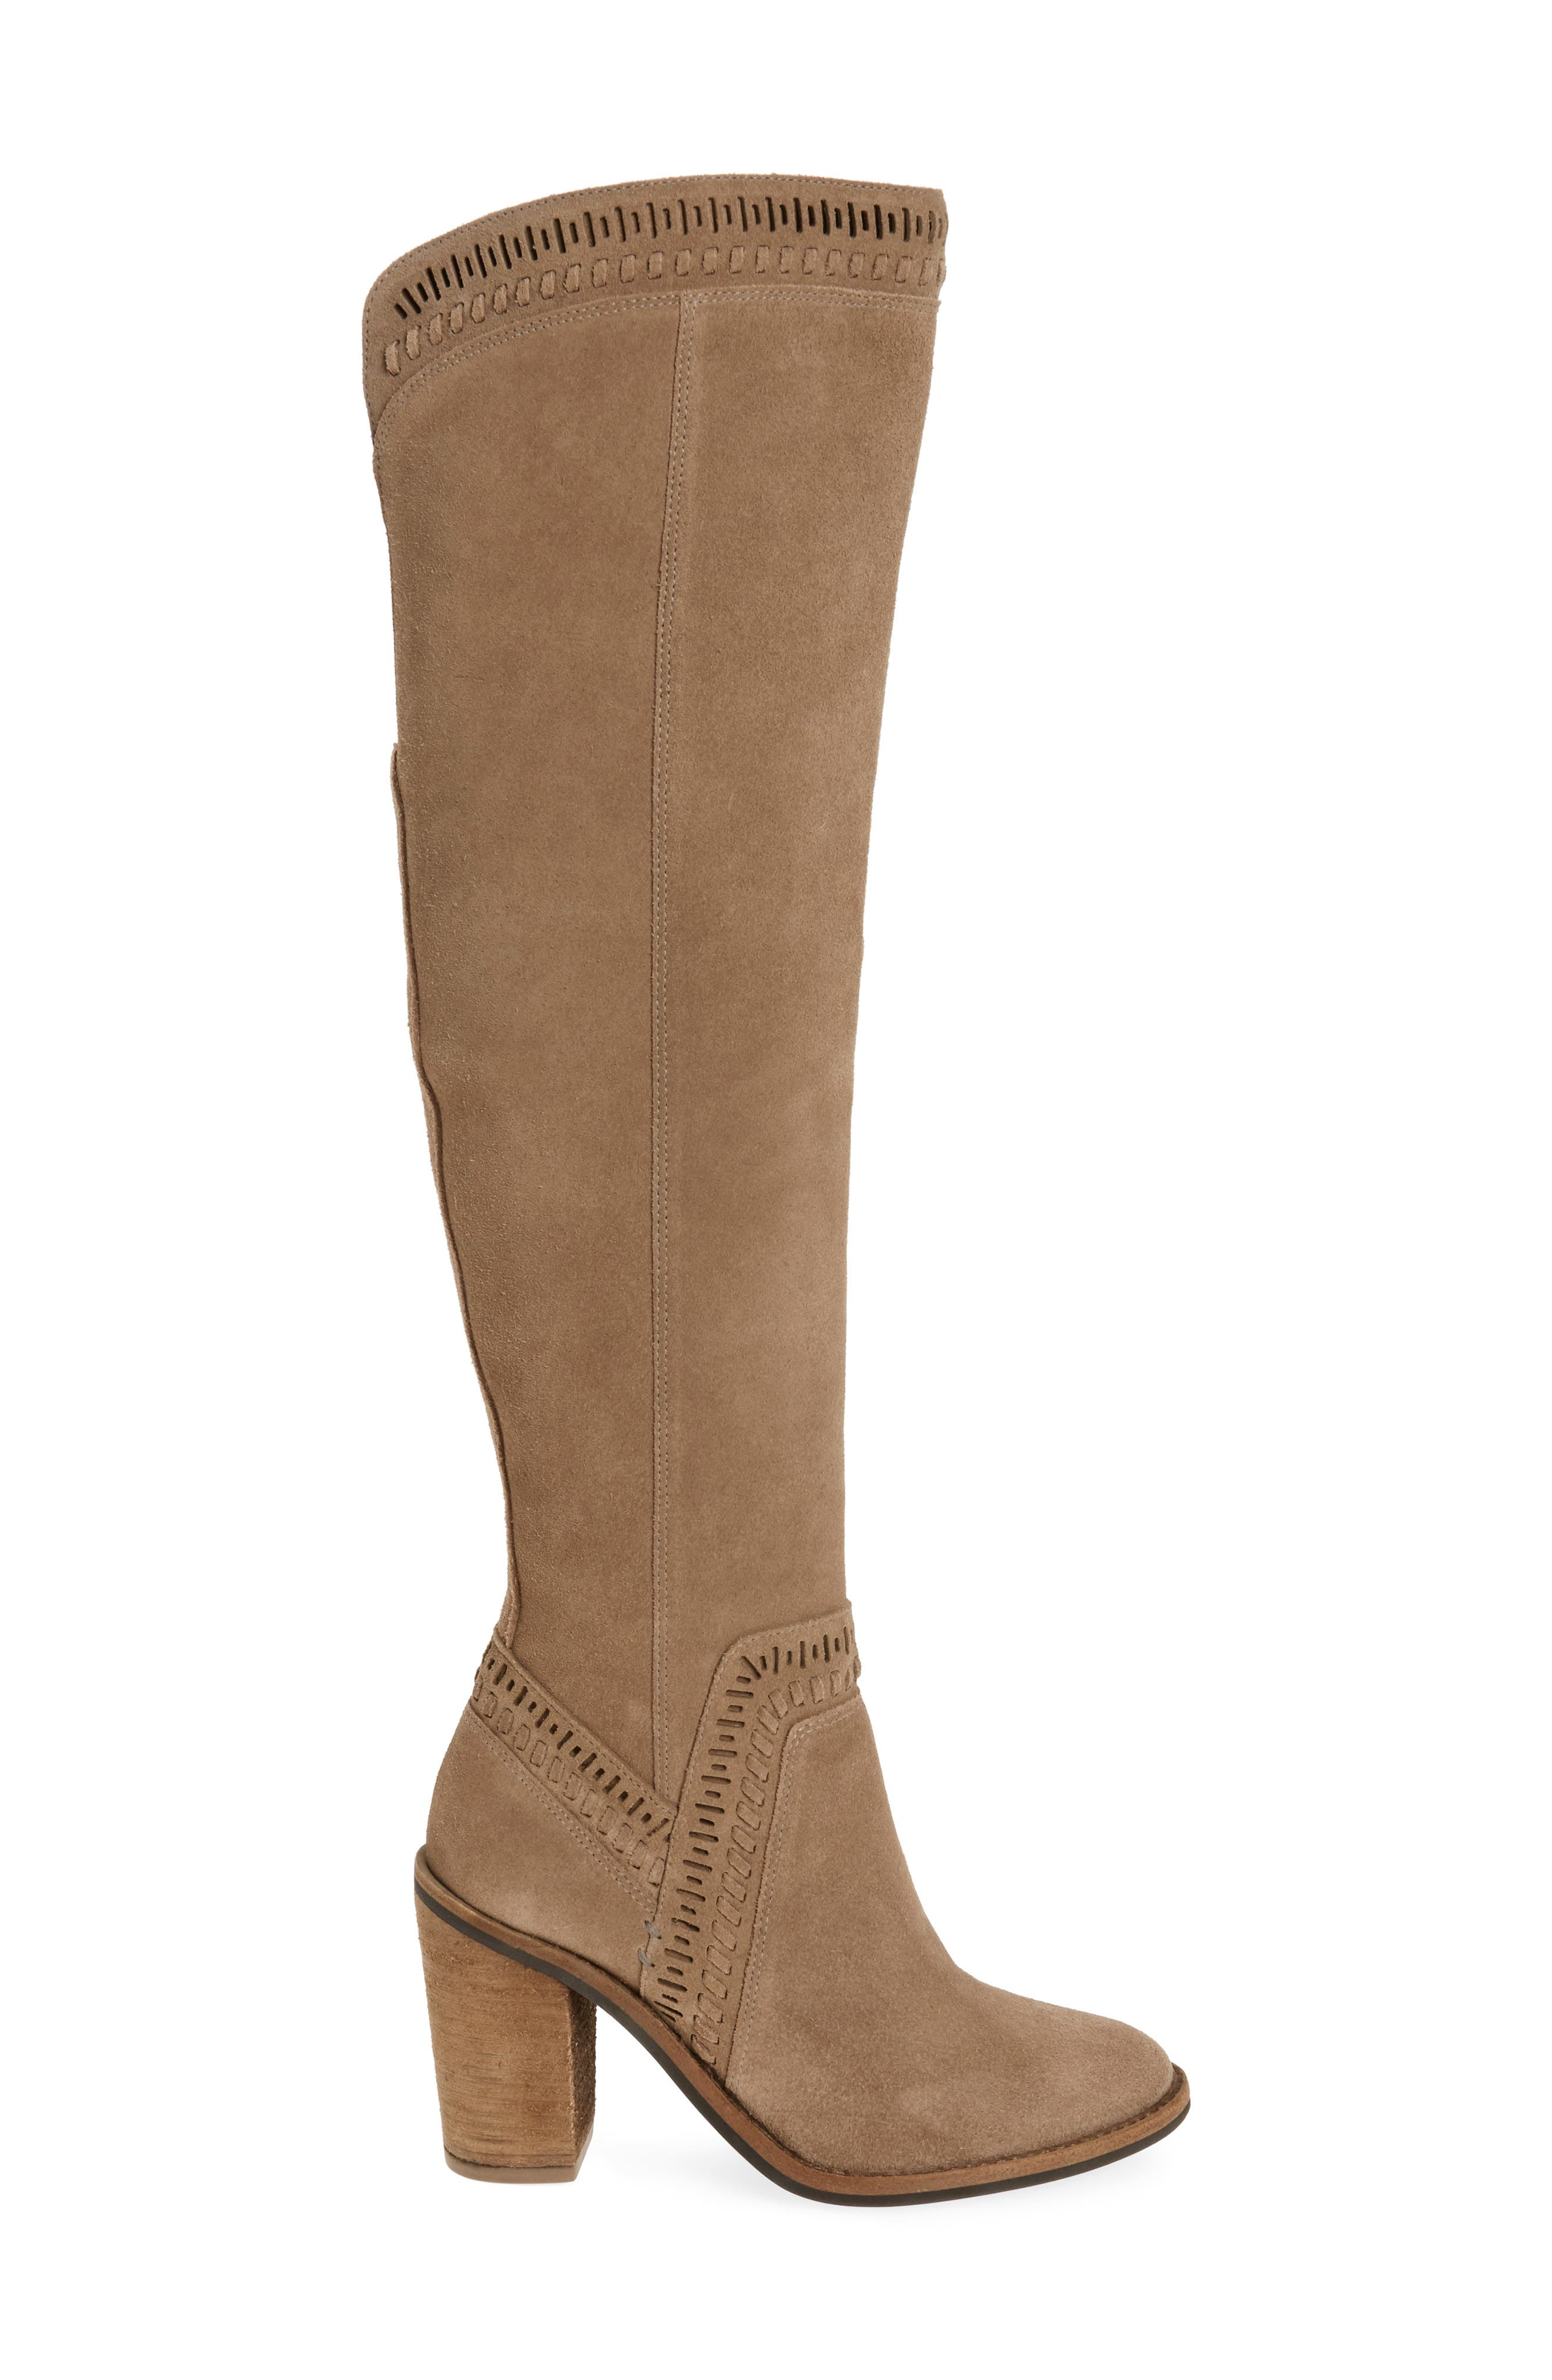 Alternate Image 3  - Vince Camuto Madolee Over the Knee Boot (Women)